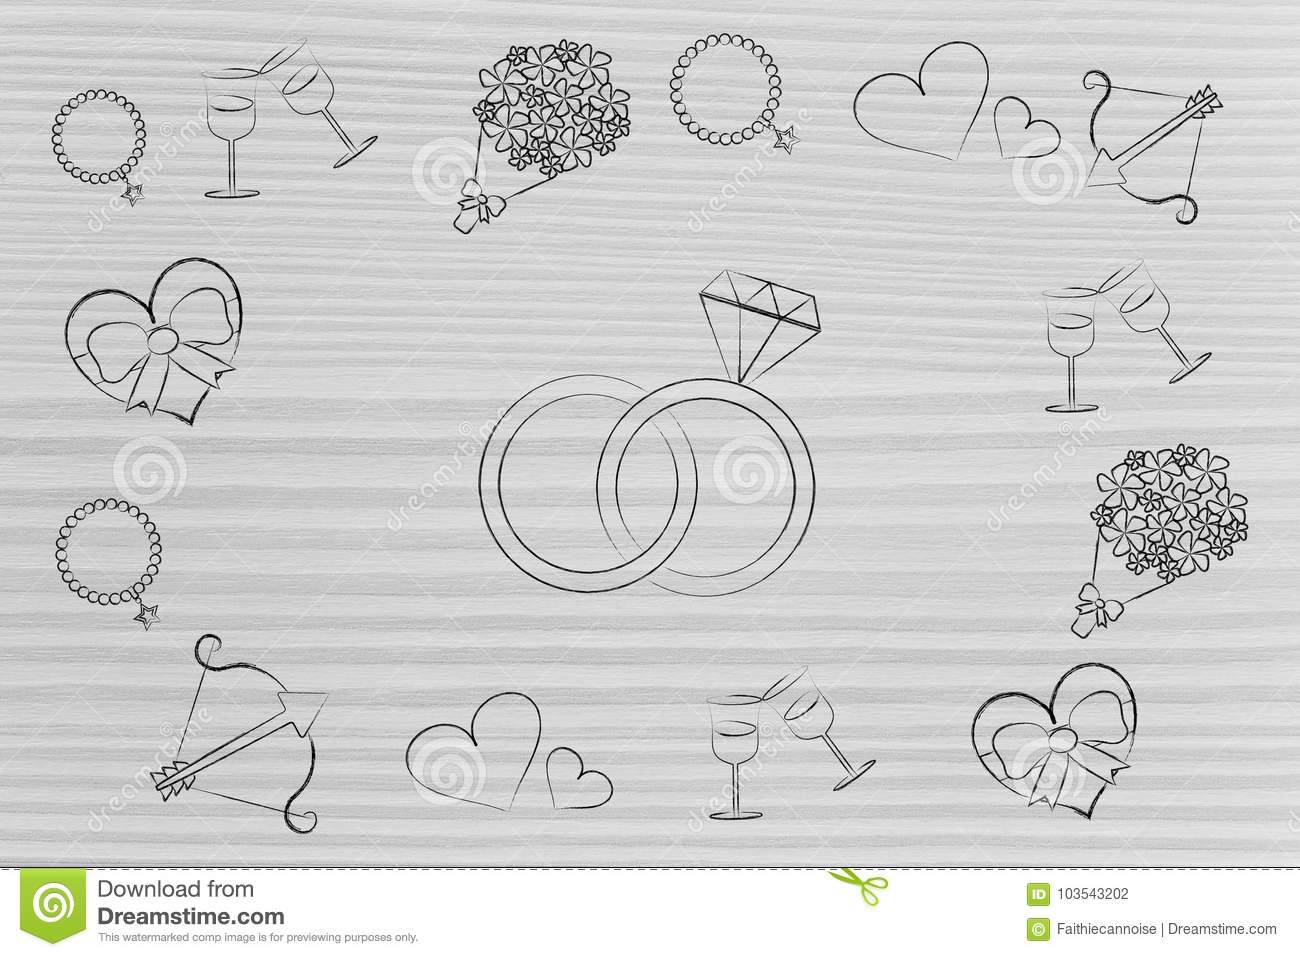 Wedding Rings Surrounded By Romance And Love Themed Symbols Stock